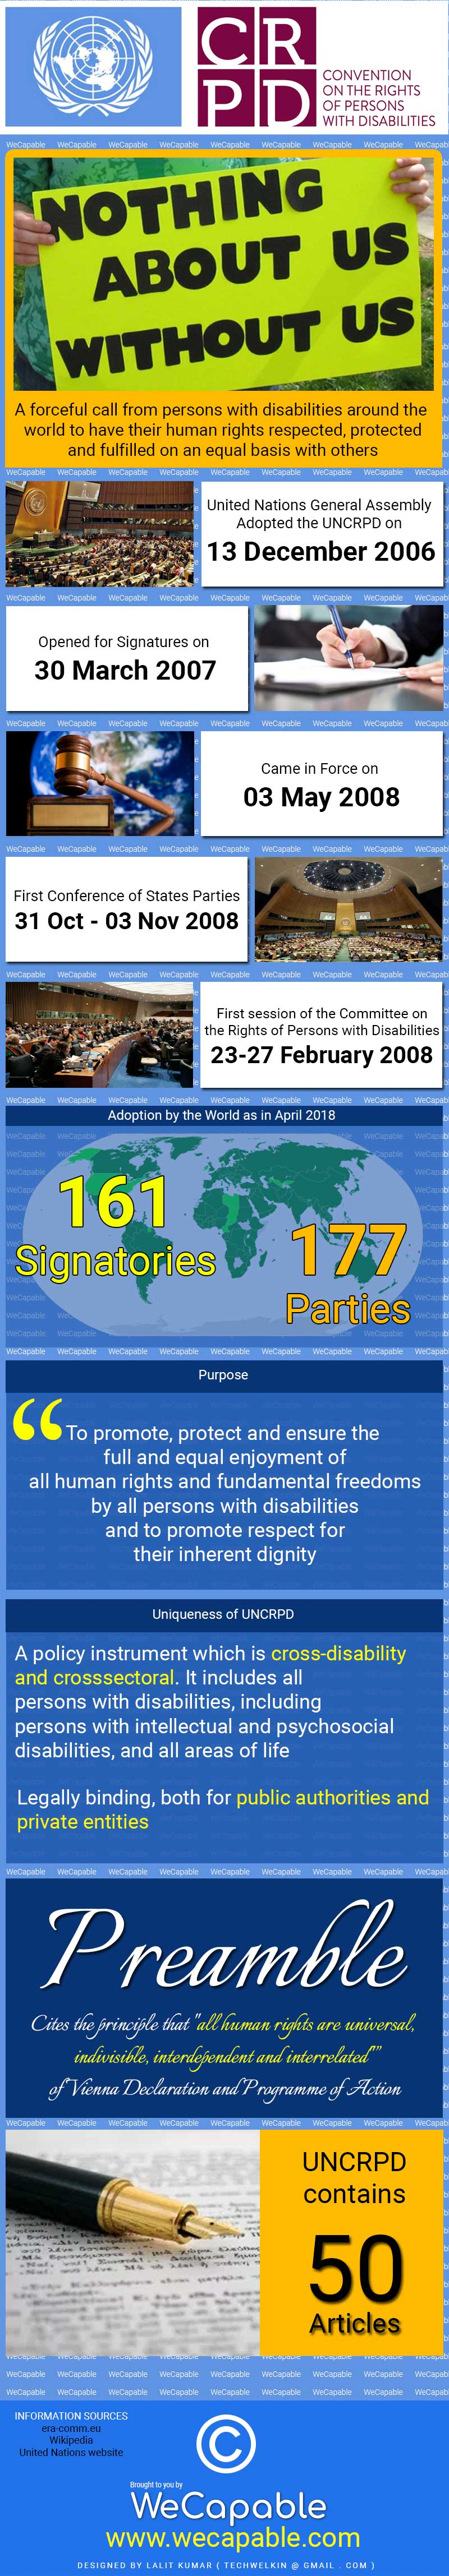 UNCRPD Infographic, Important Points, Summary